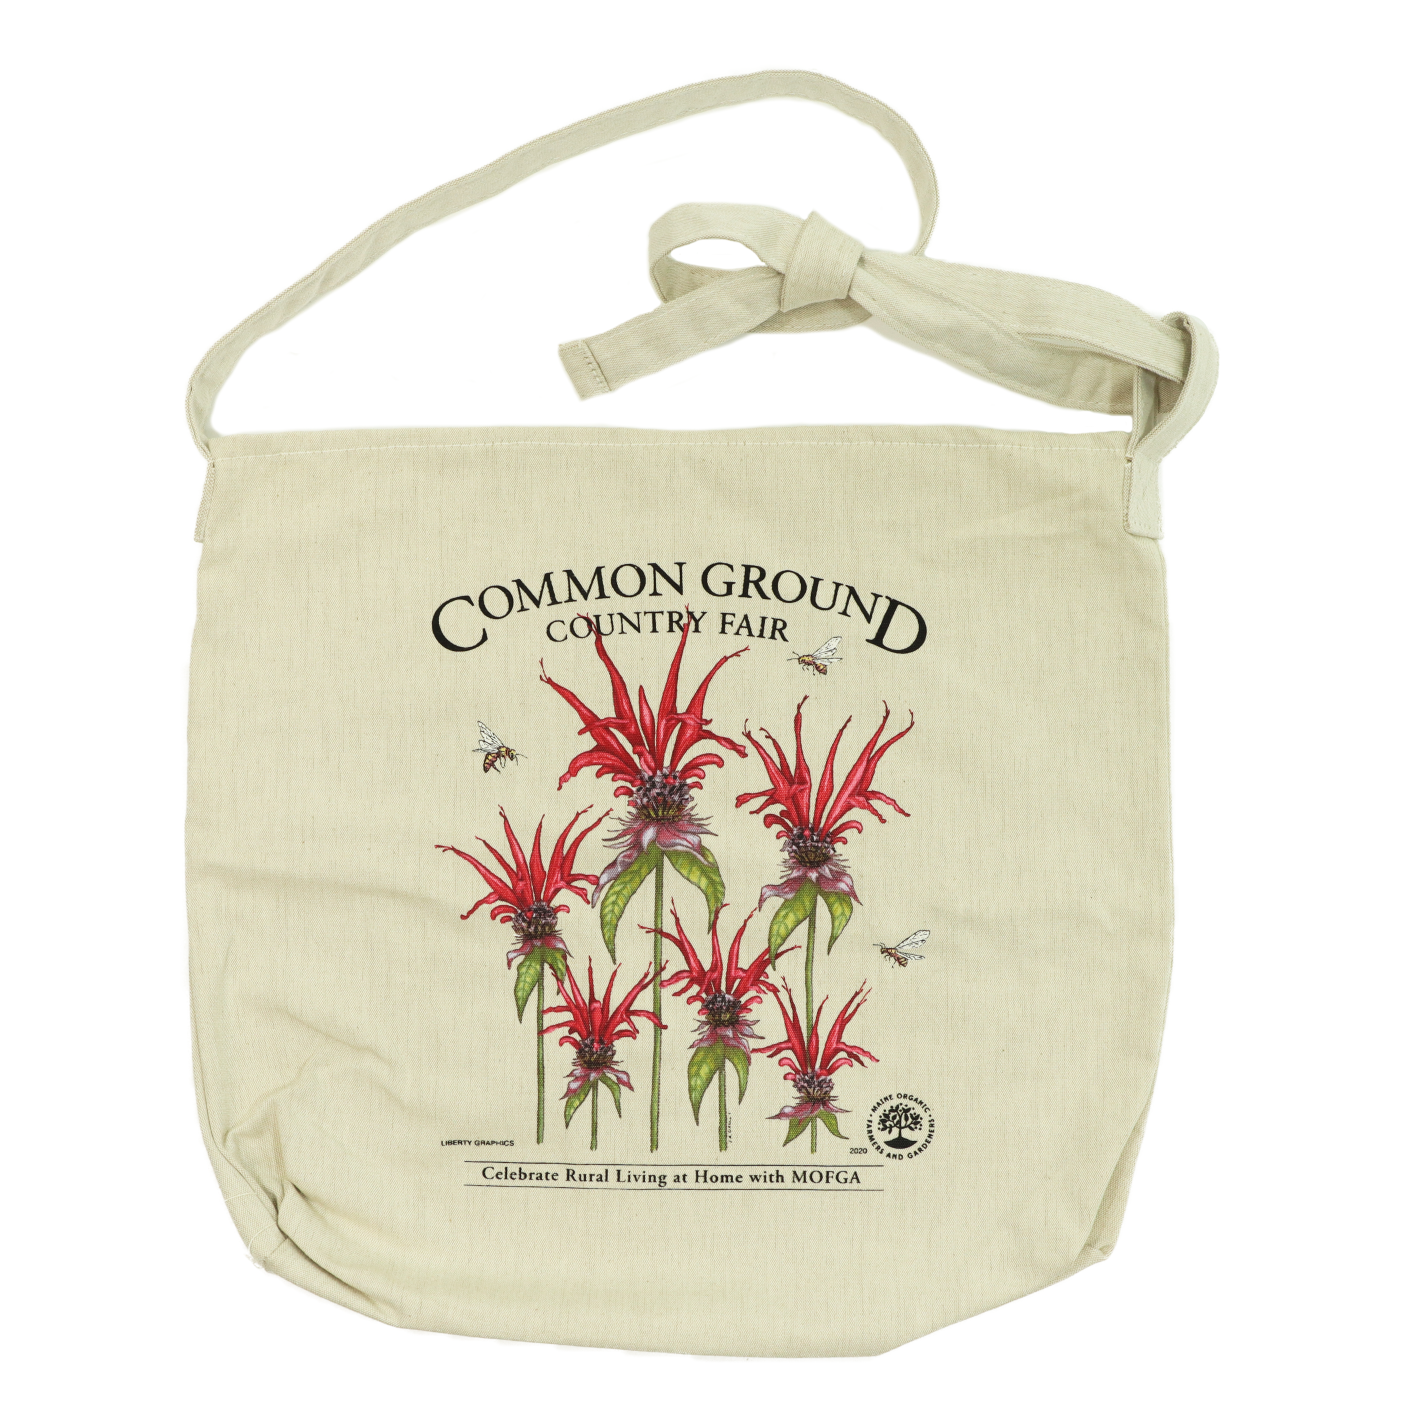 2020 Common Ground Country Fair - Journey Bag